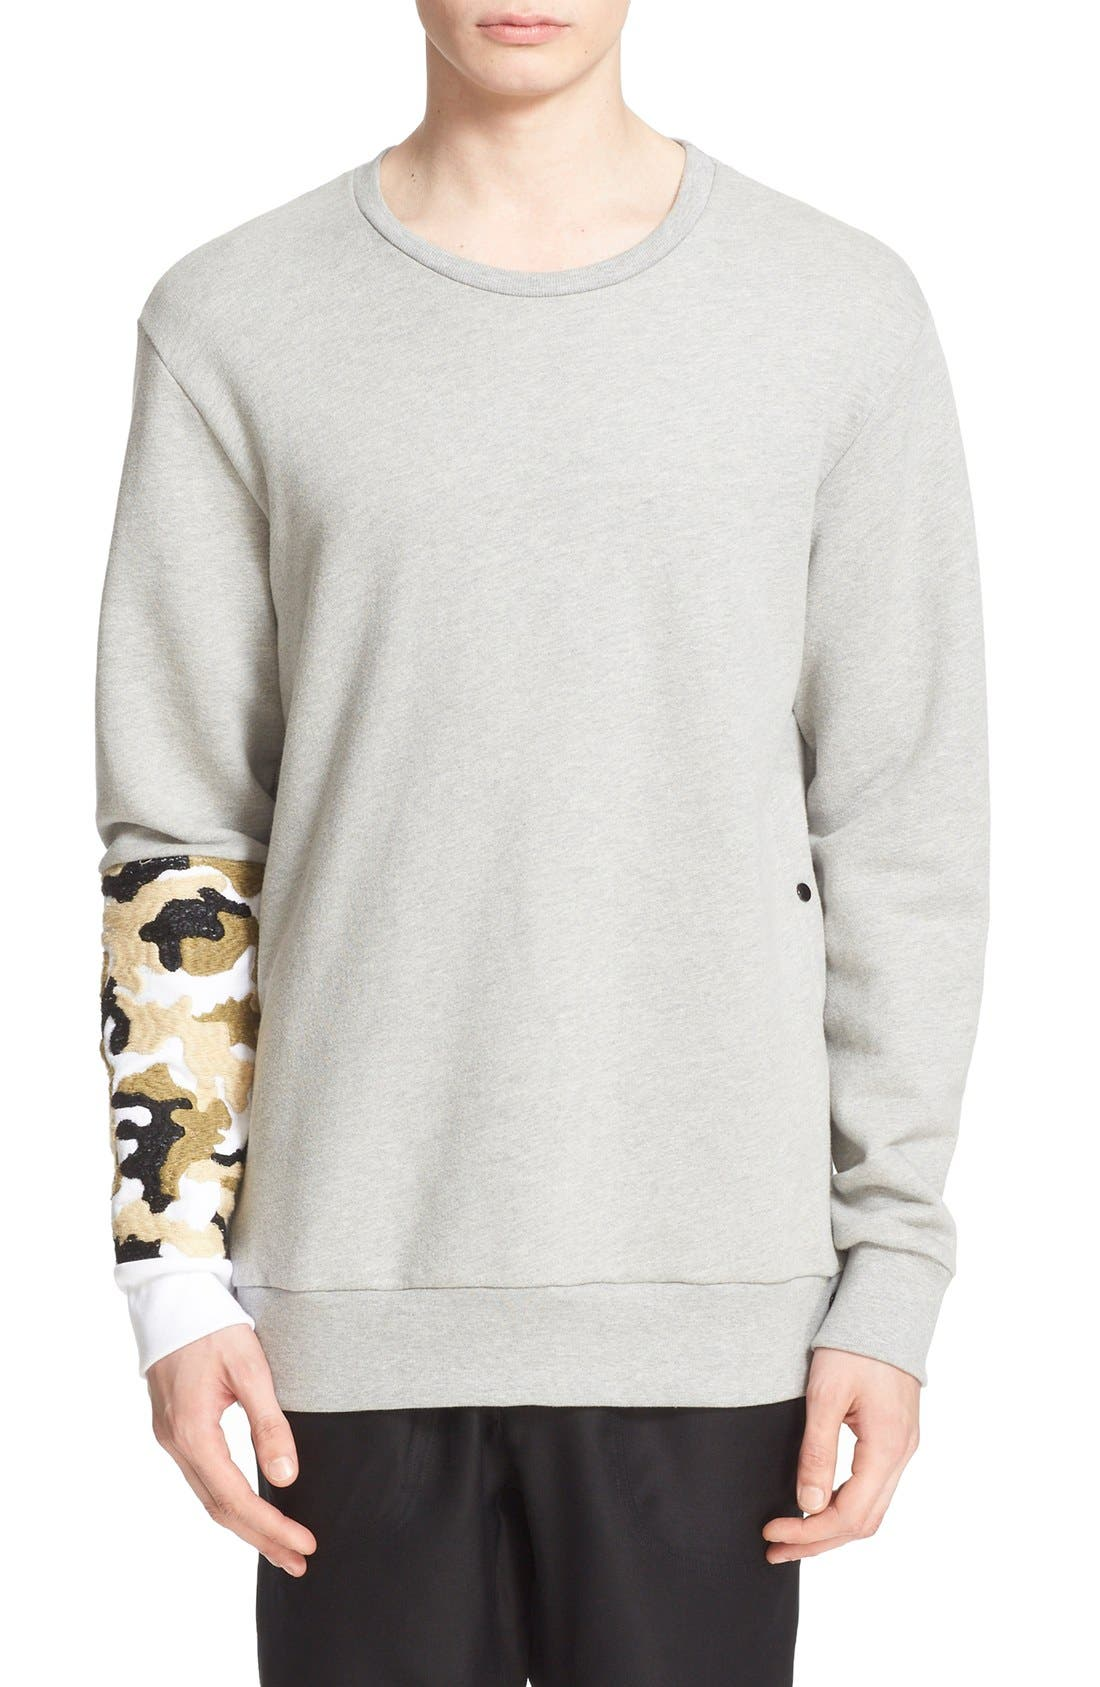 DRIFTER 'Bradley' Embroidered Sleeve Sweatshirt